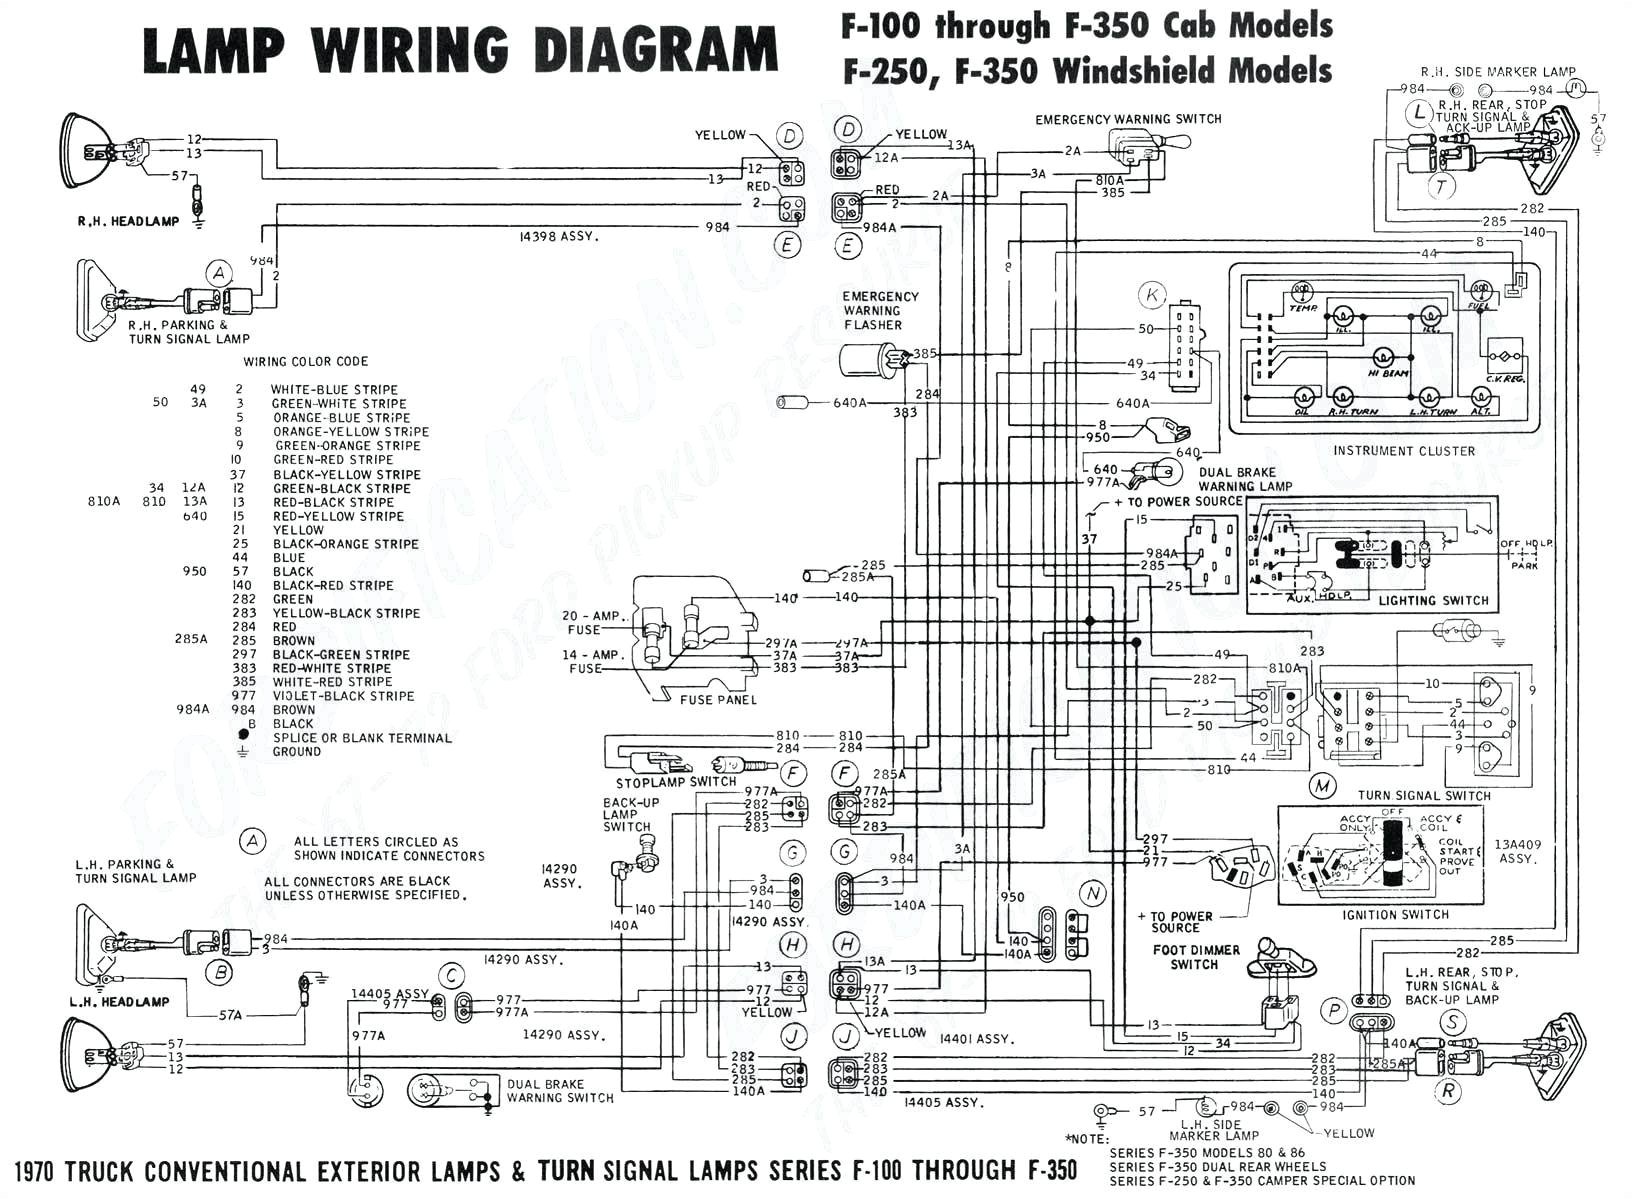 2008 ford f450 fuse diagram lzk gallery wiring diagram blog 1969 camaro ignition switch wiring diagram lzk gallery